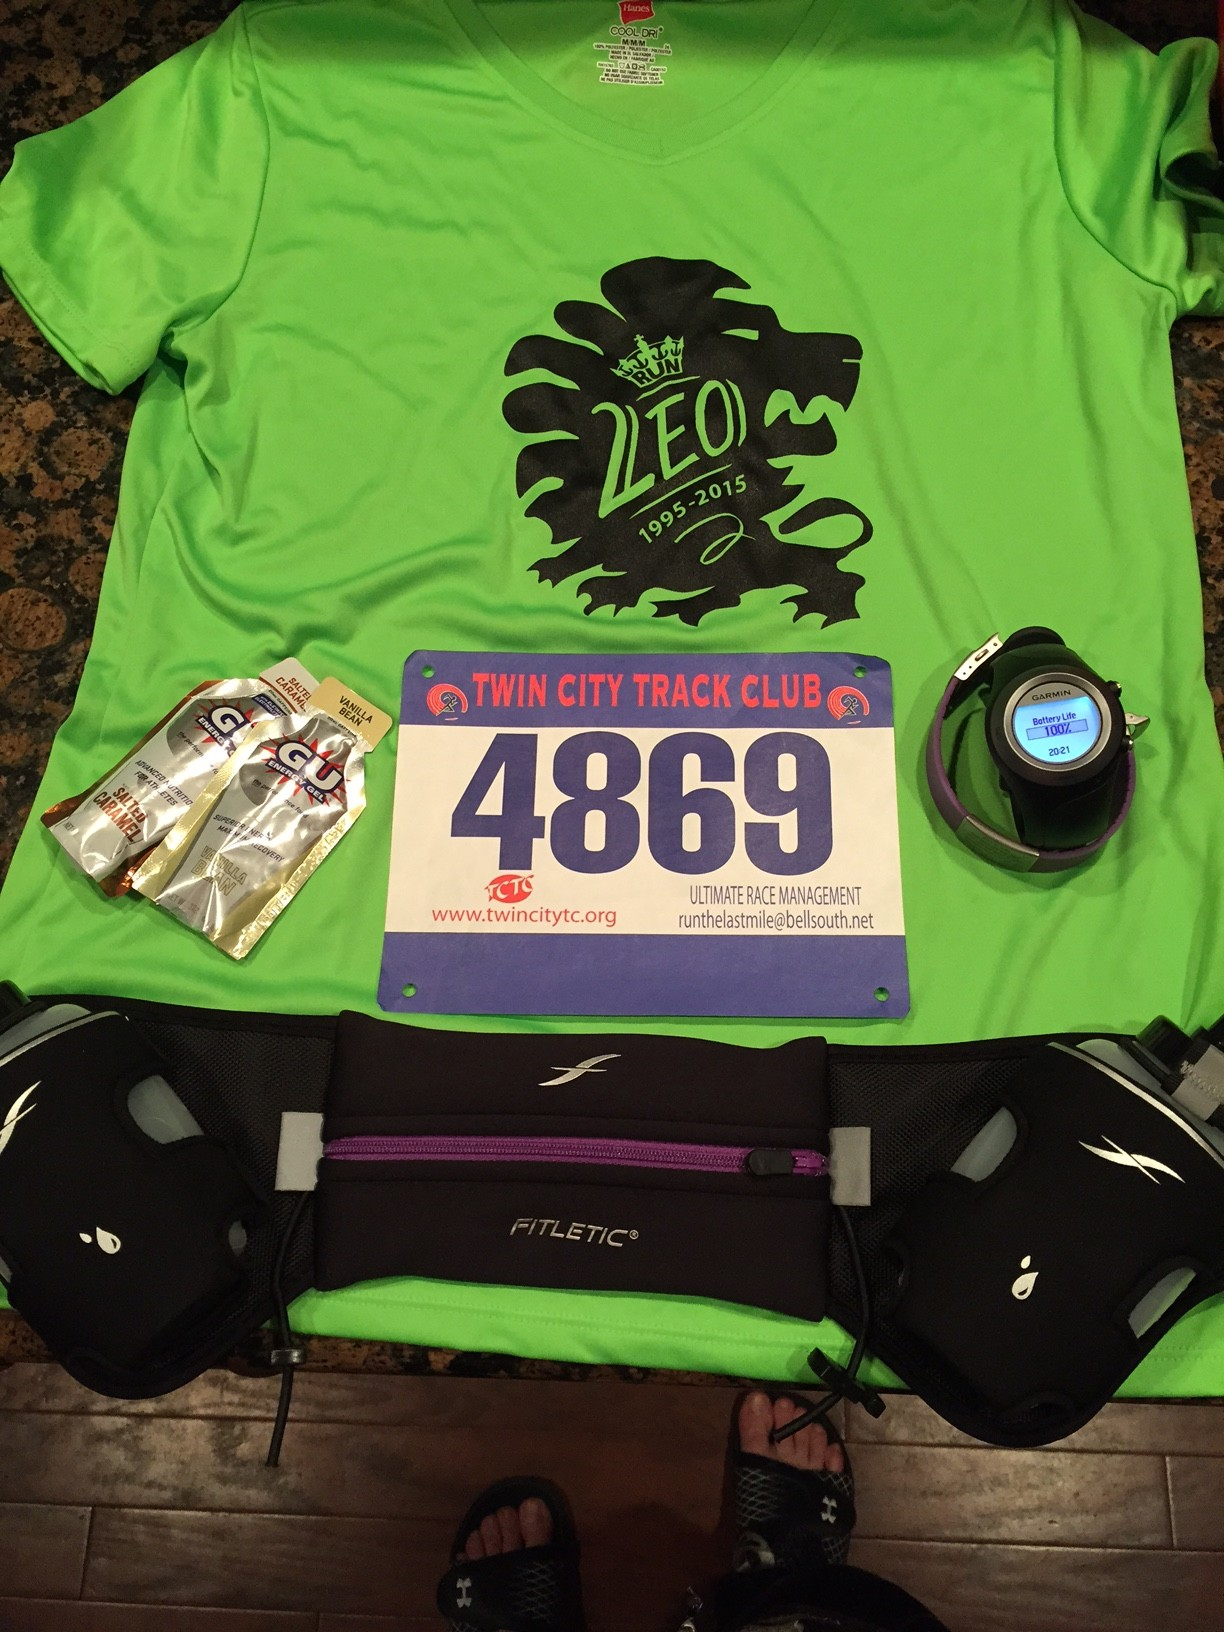 St. Leo 10K Race Report